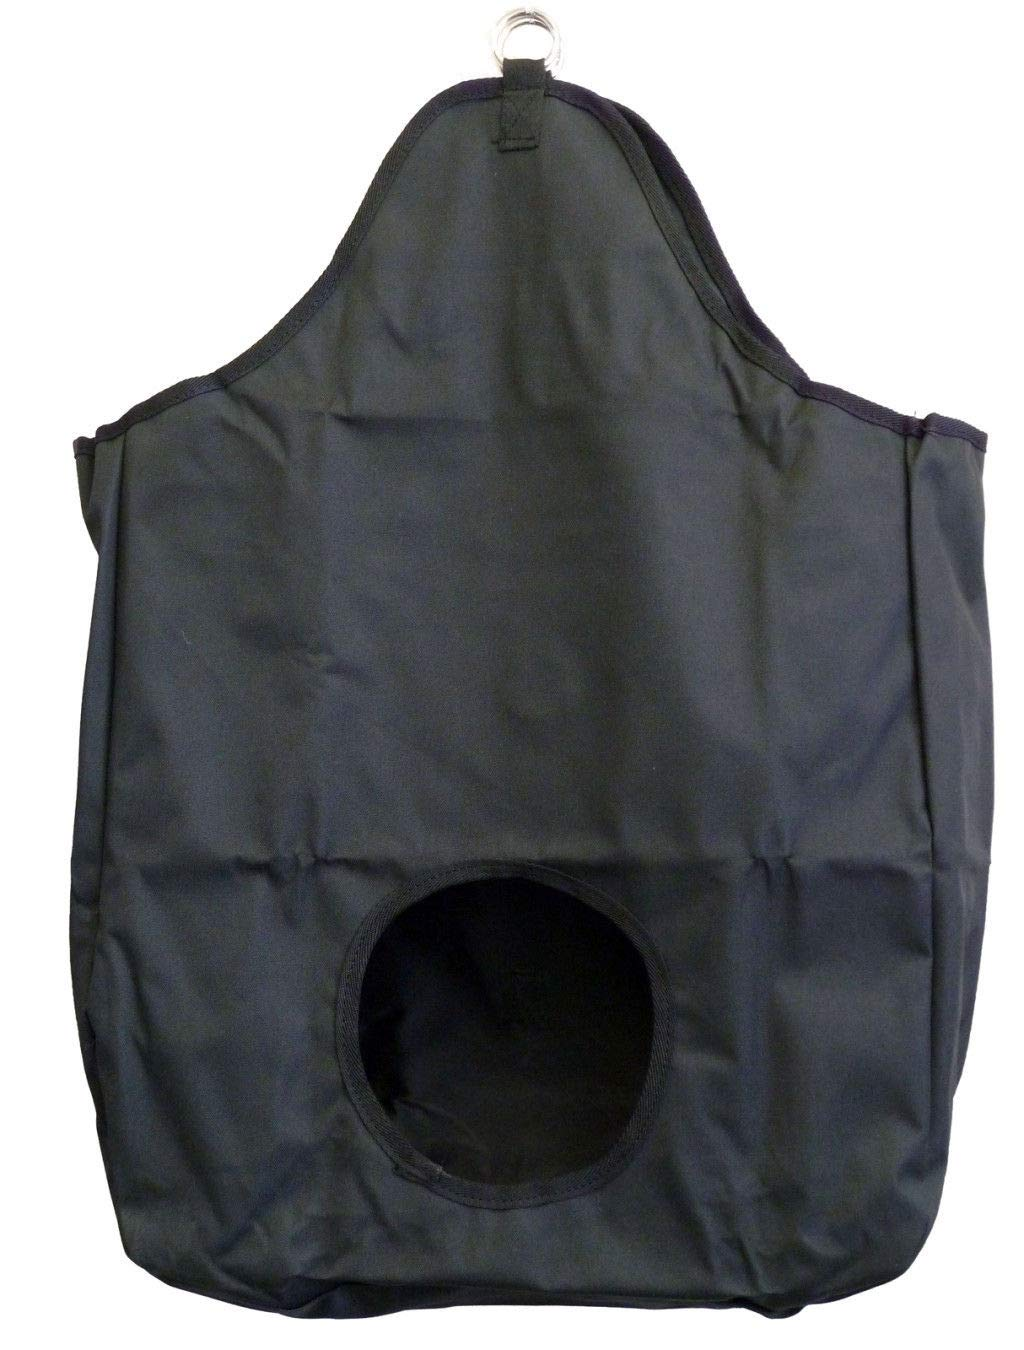 AJ Tack Wholesale Horse Feeding Hay Bag Solid Panel with Metal Rings 600D Canvas Nylon Black by AJ Tack Wholesale